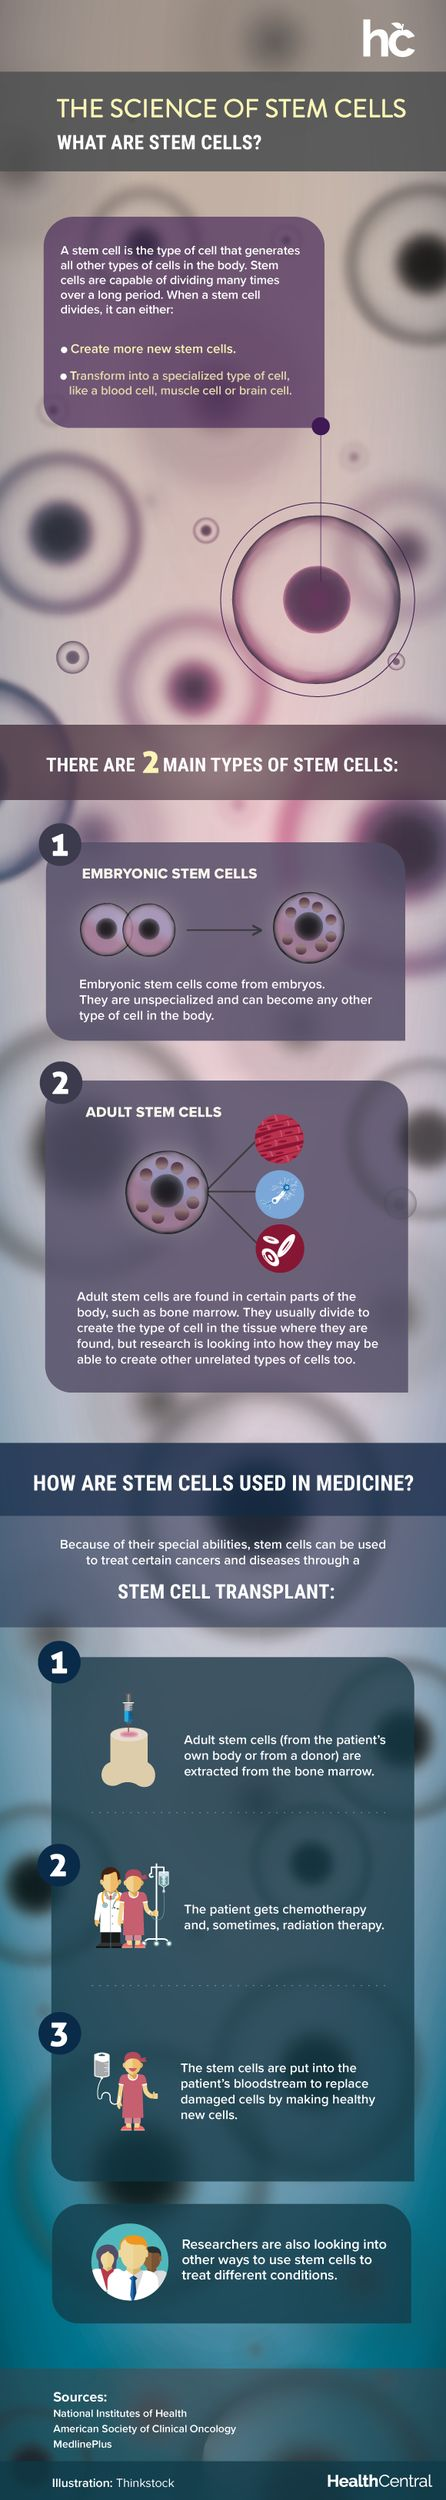 Infographic: The Science of Stem Cells - More Conditions